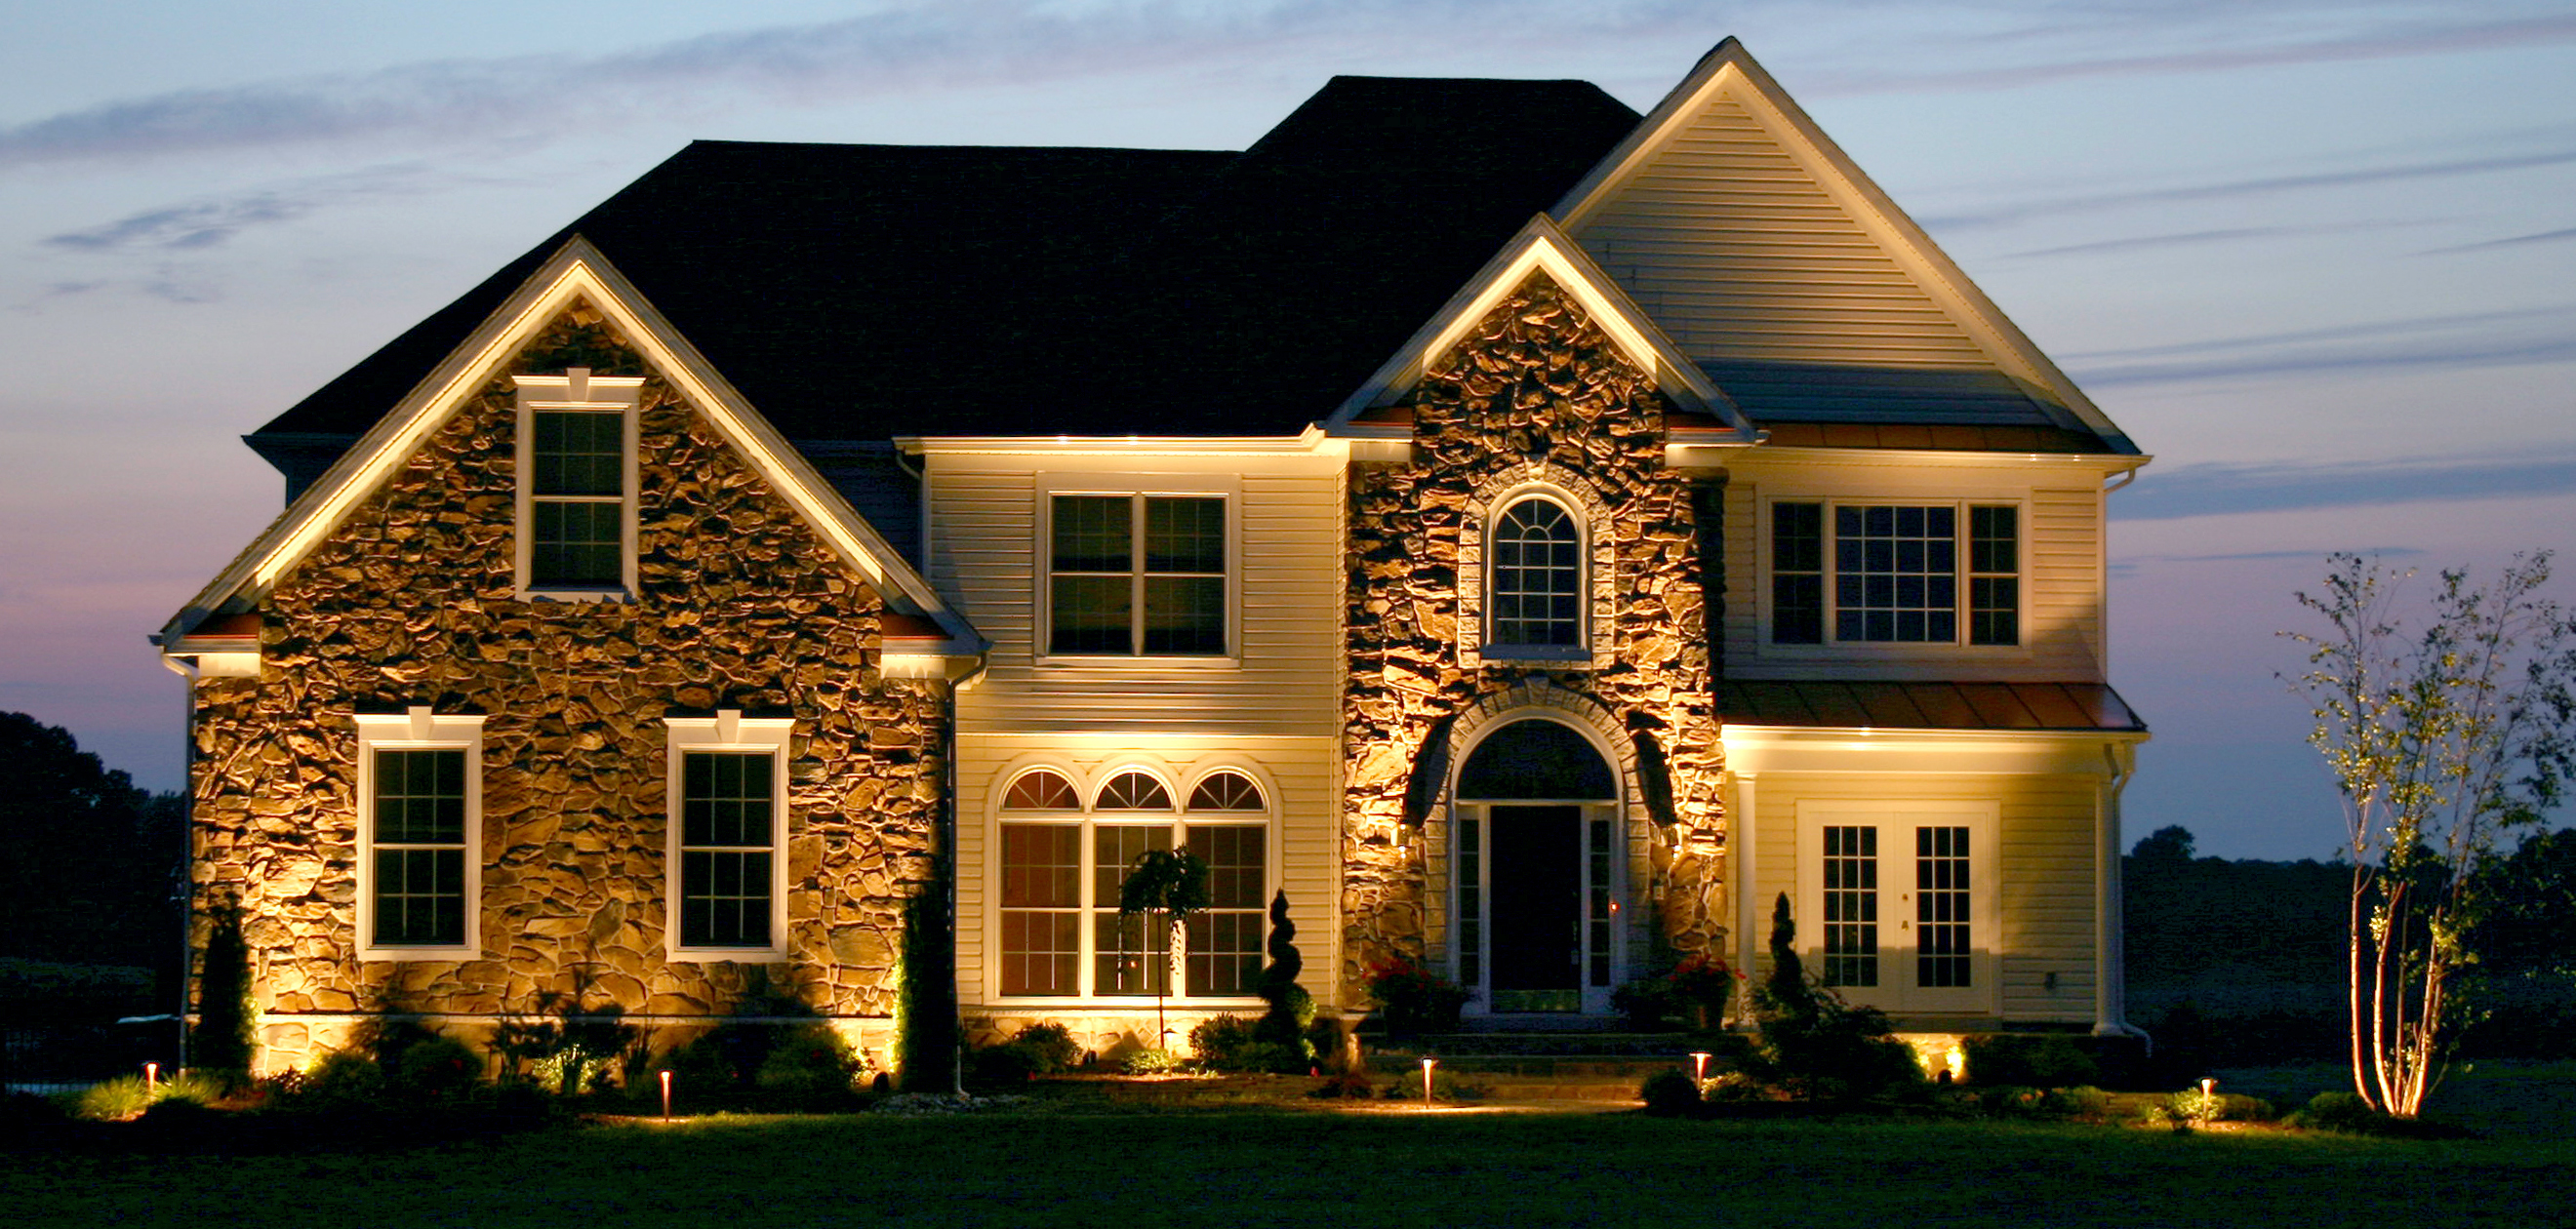 Tips for staging your home | Outdoor Lighting in Chattanooga